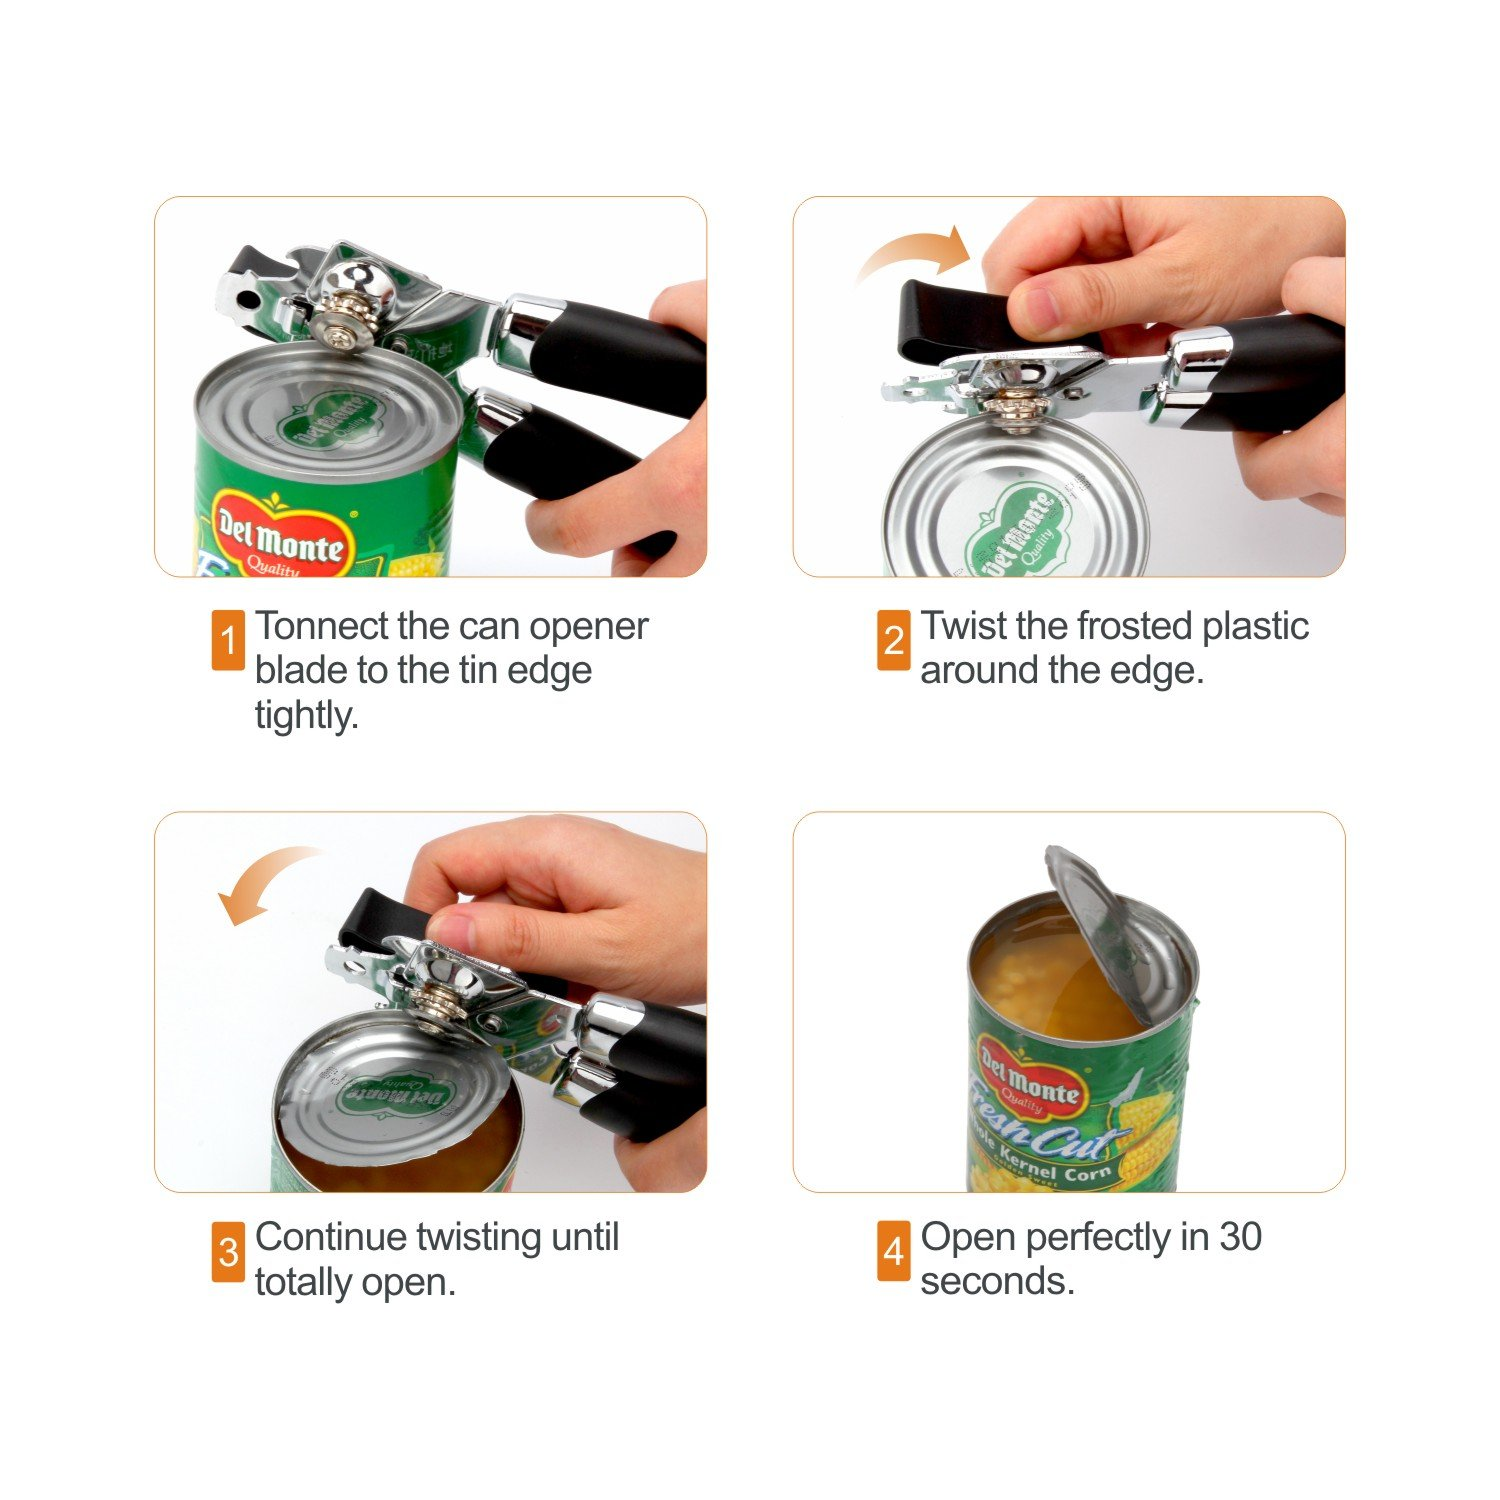 304 Stainless Steel Materials Ergonomic Turning Knob-Suitable For Kitchen and Restaura Built in Bottle Opener Manual Can Opener,Male Cousin Heavy Duty Safety Smooth Edge Can Opener Black